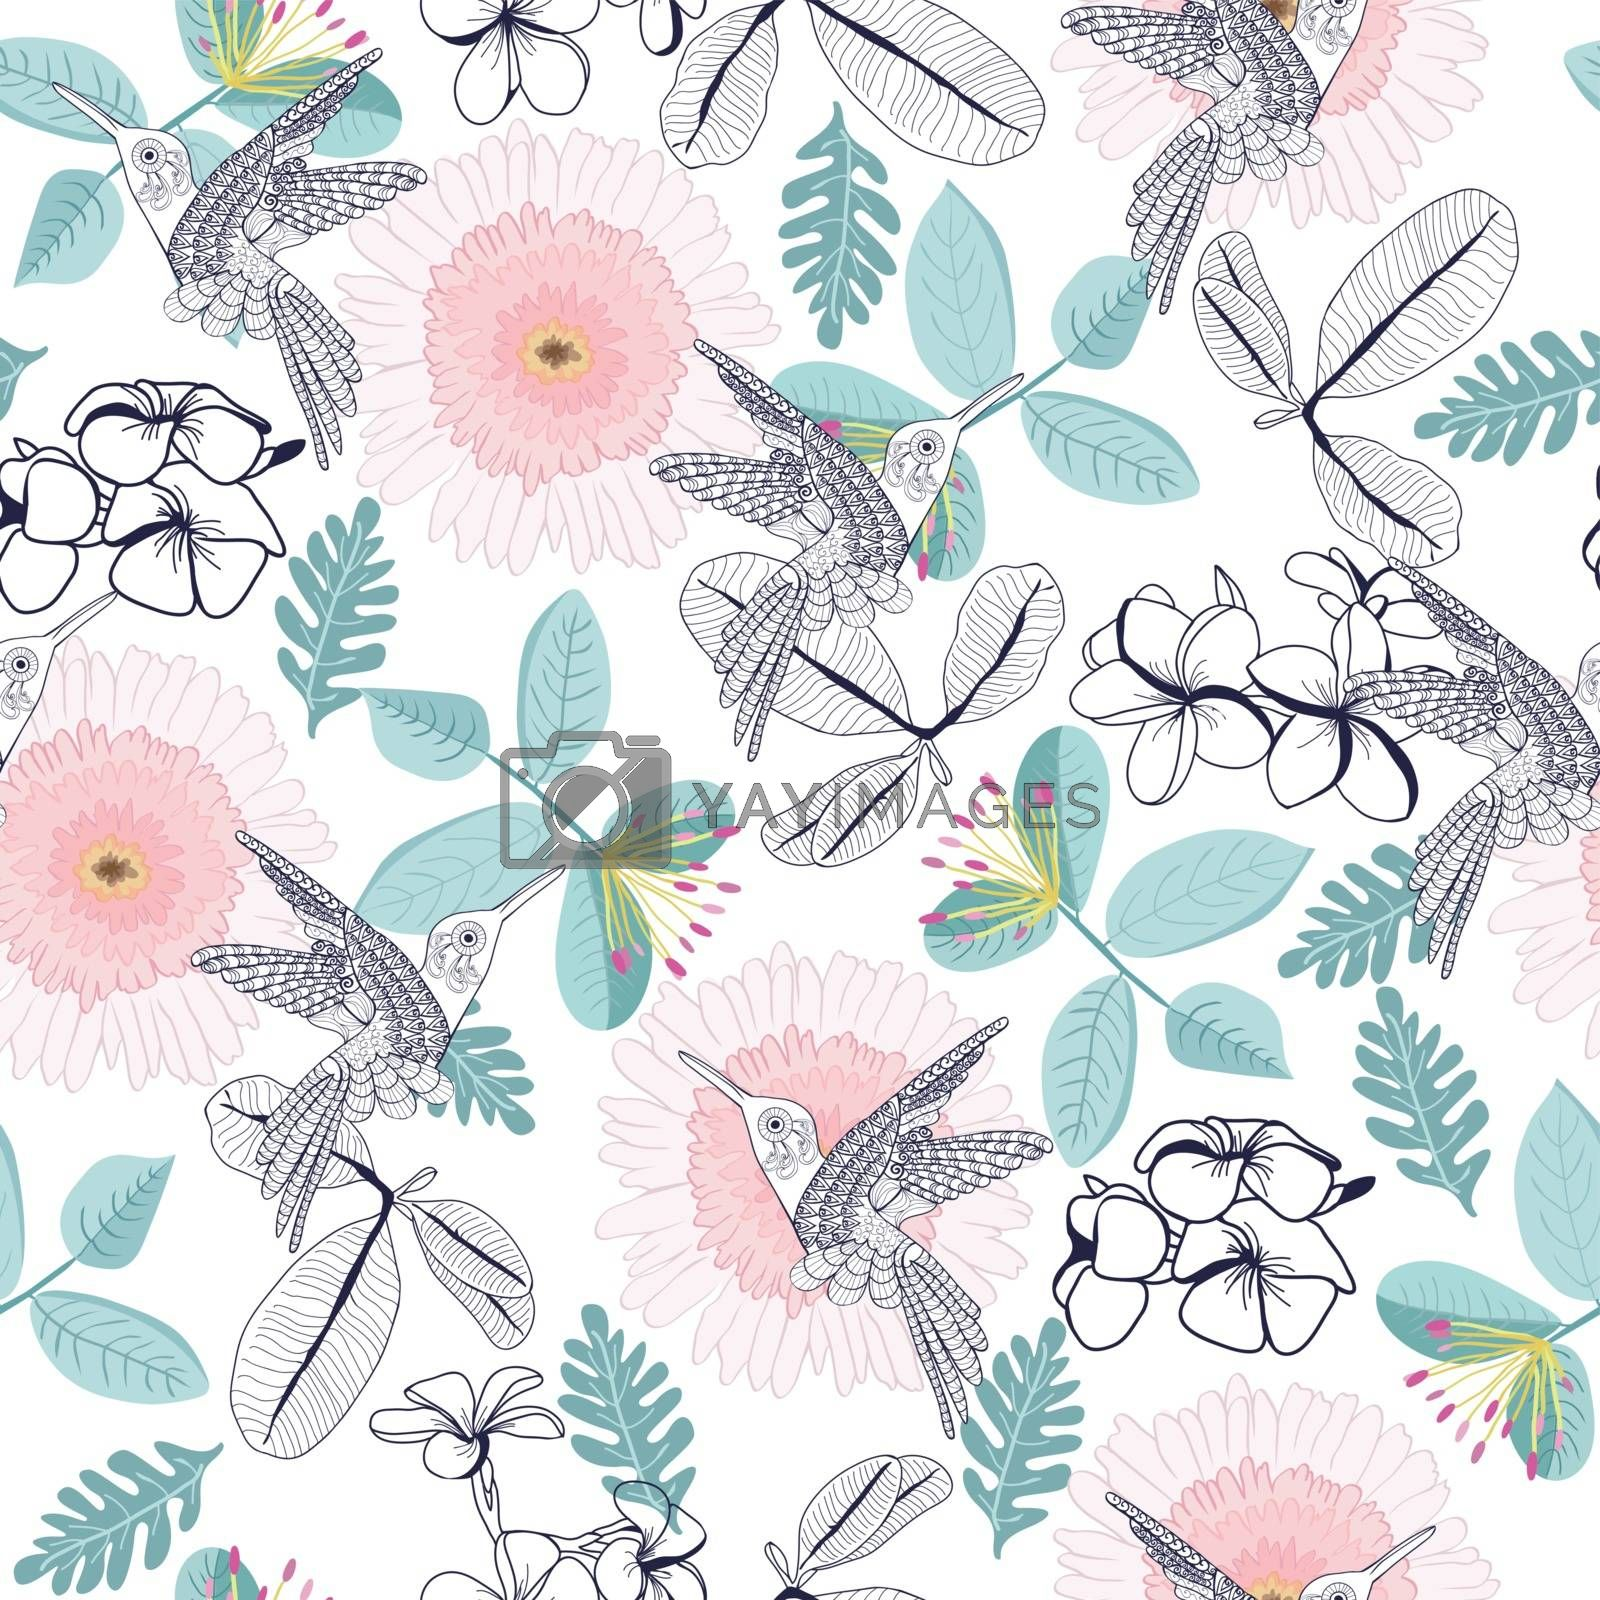 Vector hand drawn beautiful pattern of decortive plumeria and gerbera flowers and humming-bird. Can use for pattern, template, banner, posters, invitation and greeting card design.